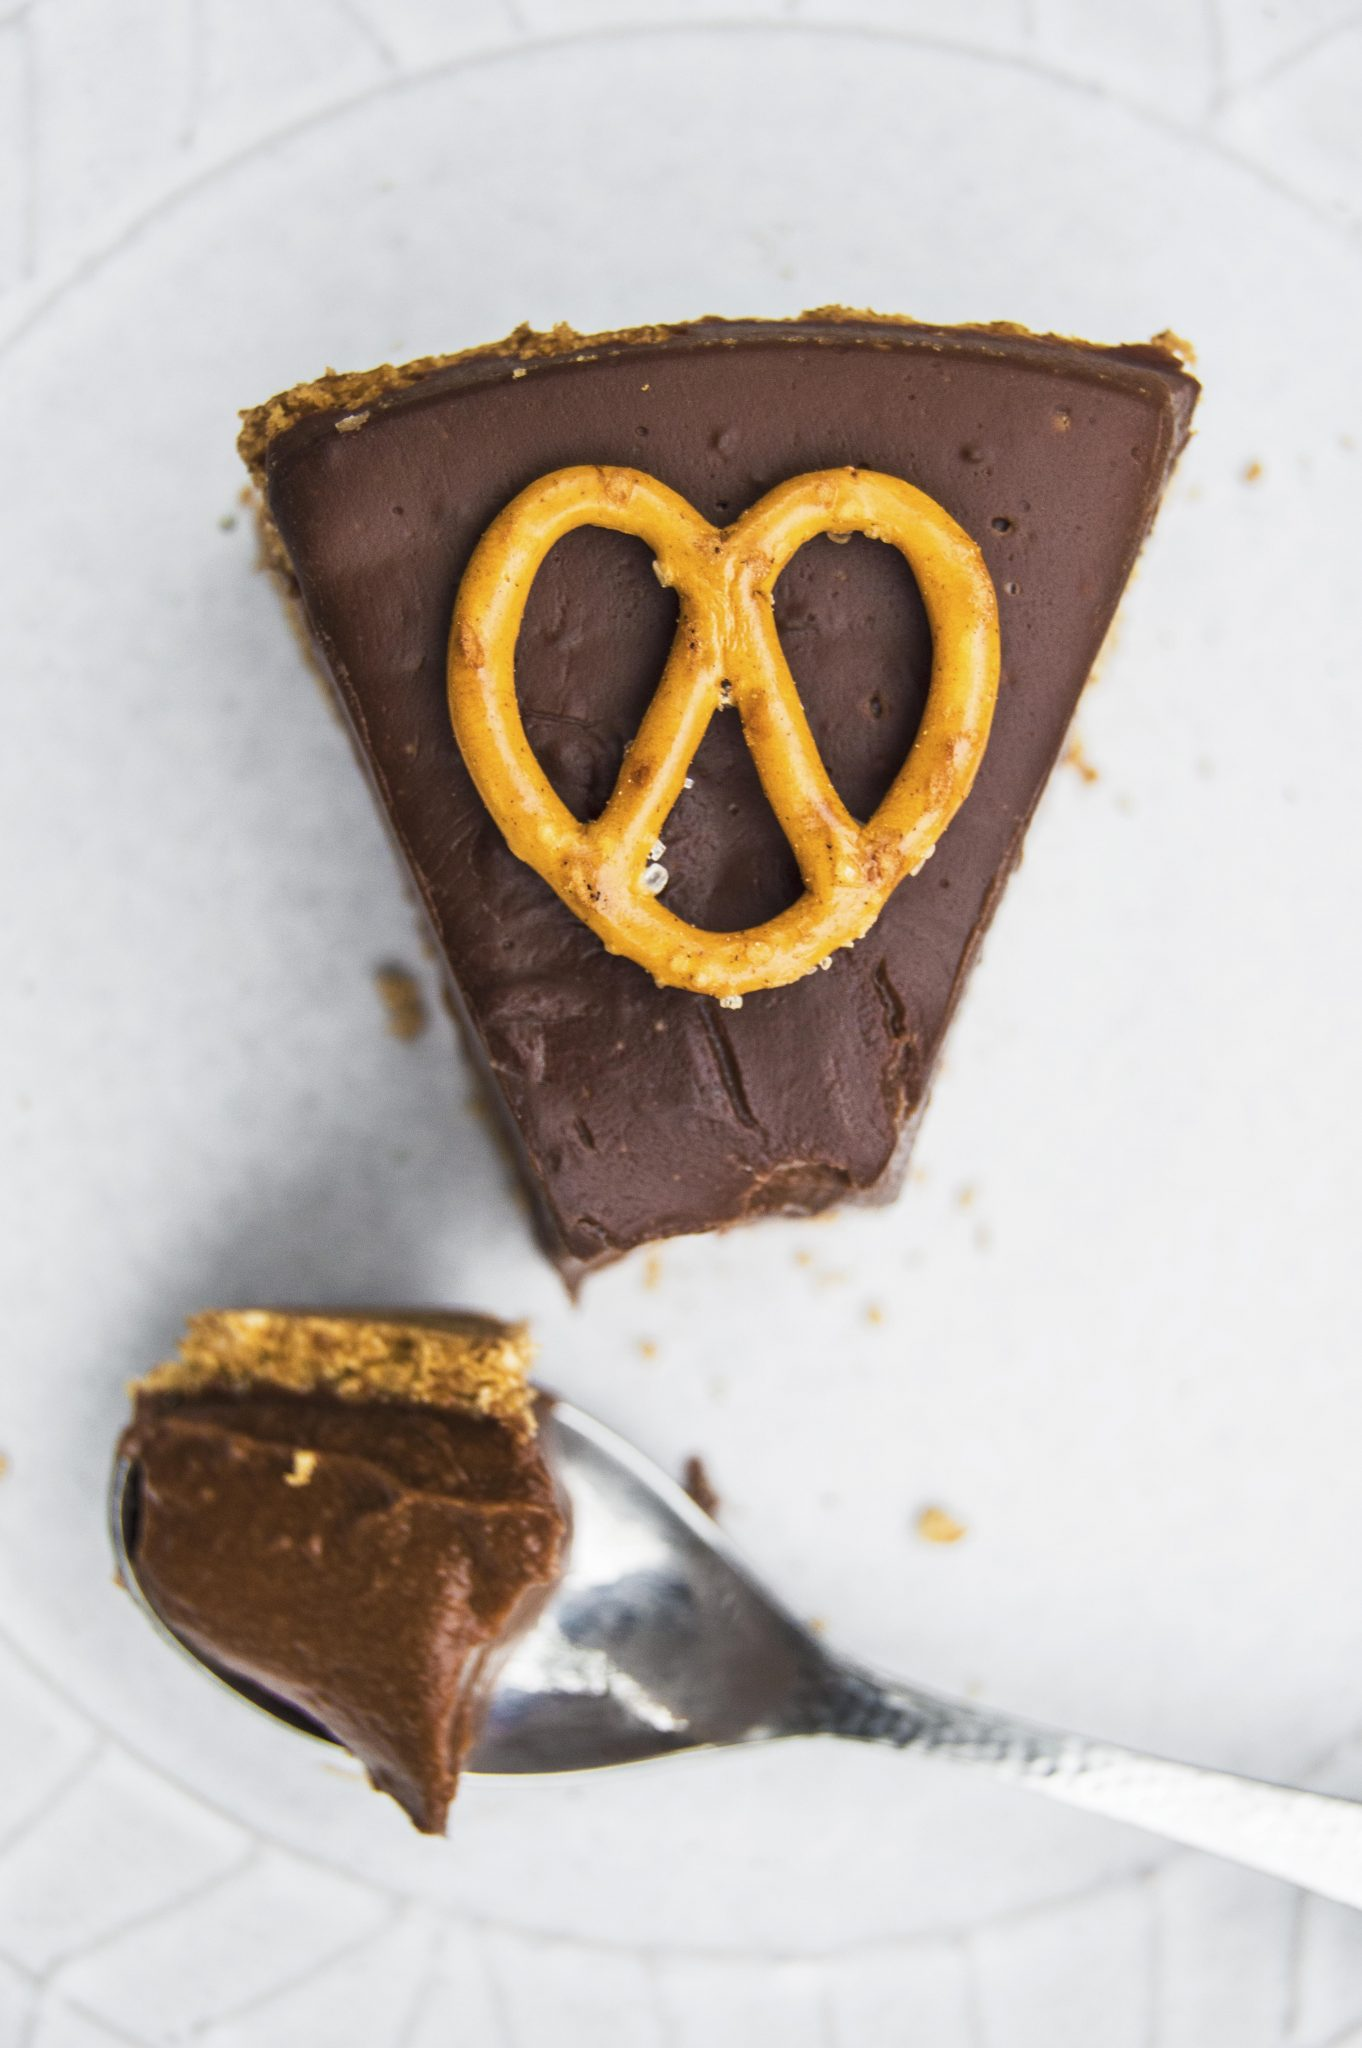 Vegan Chocolate Pie With Pretzel Crust